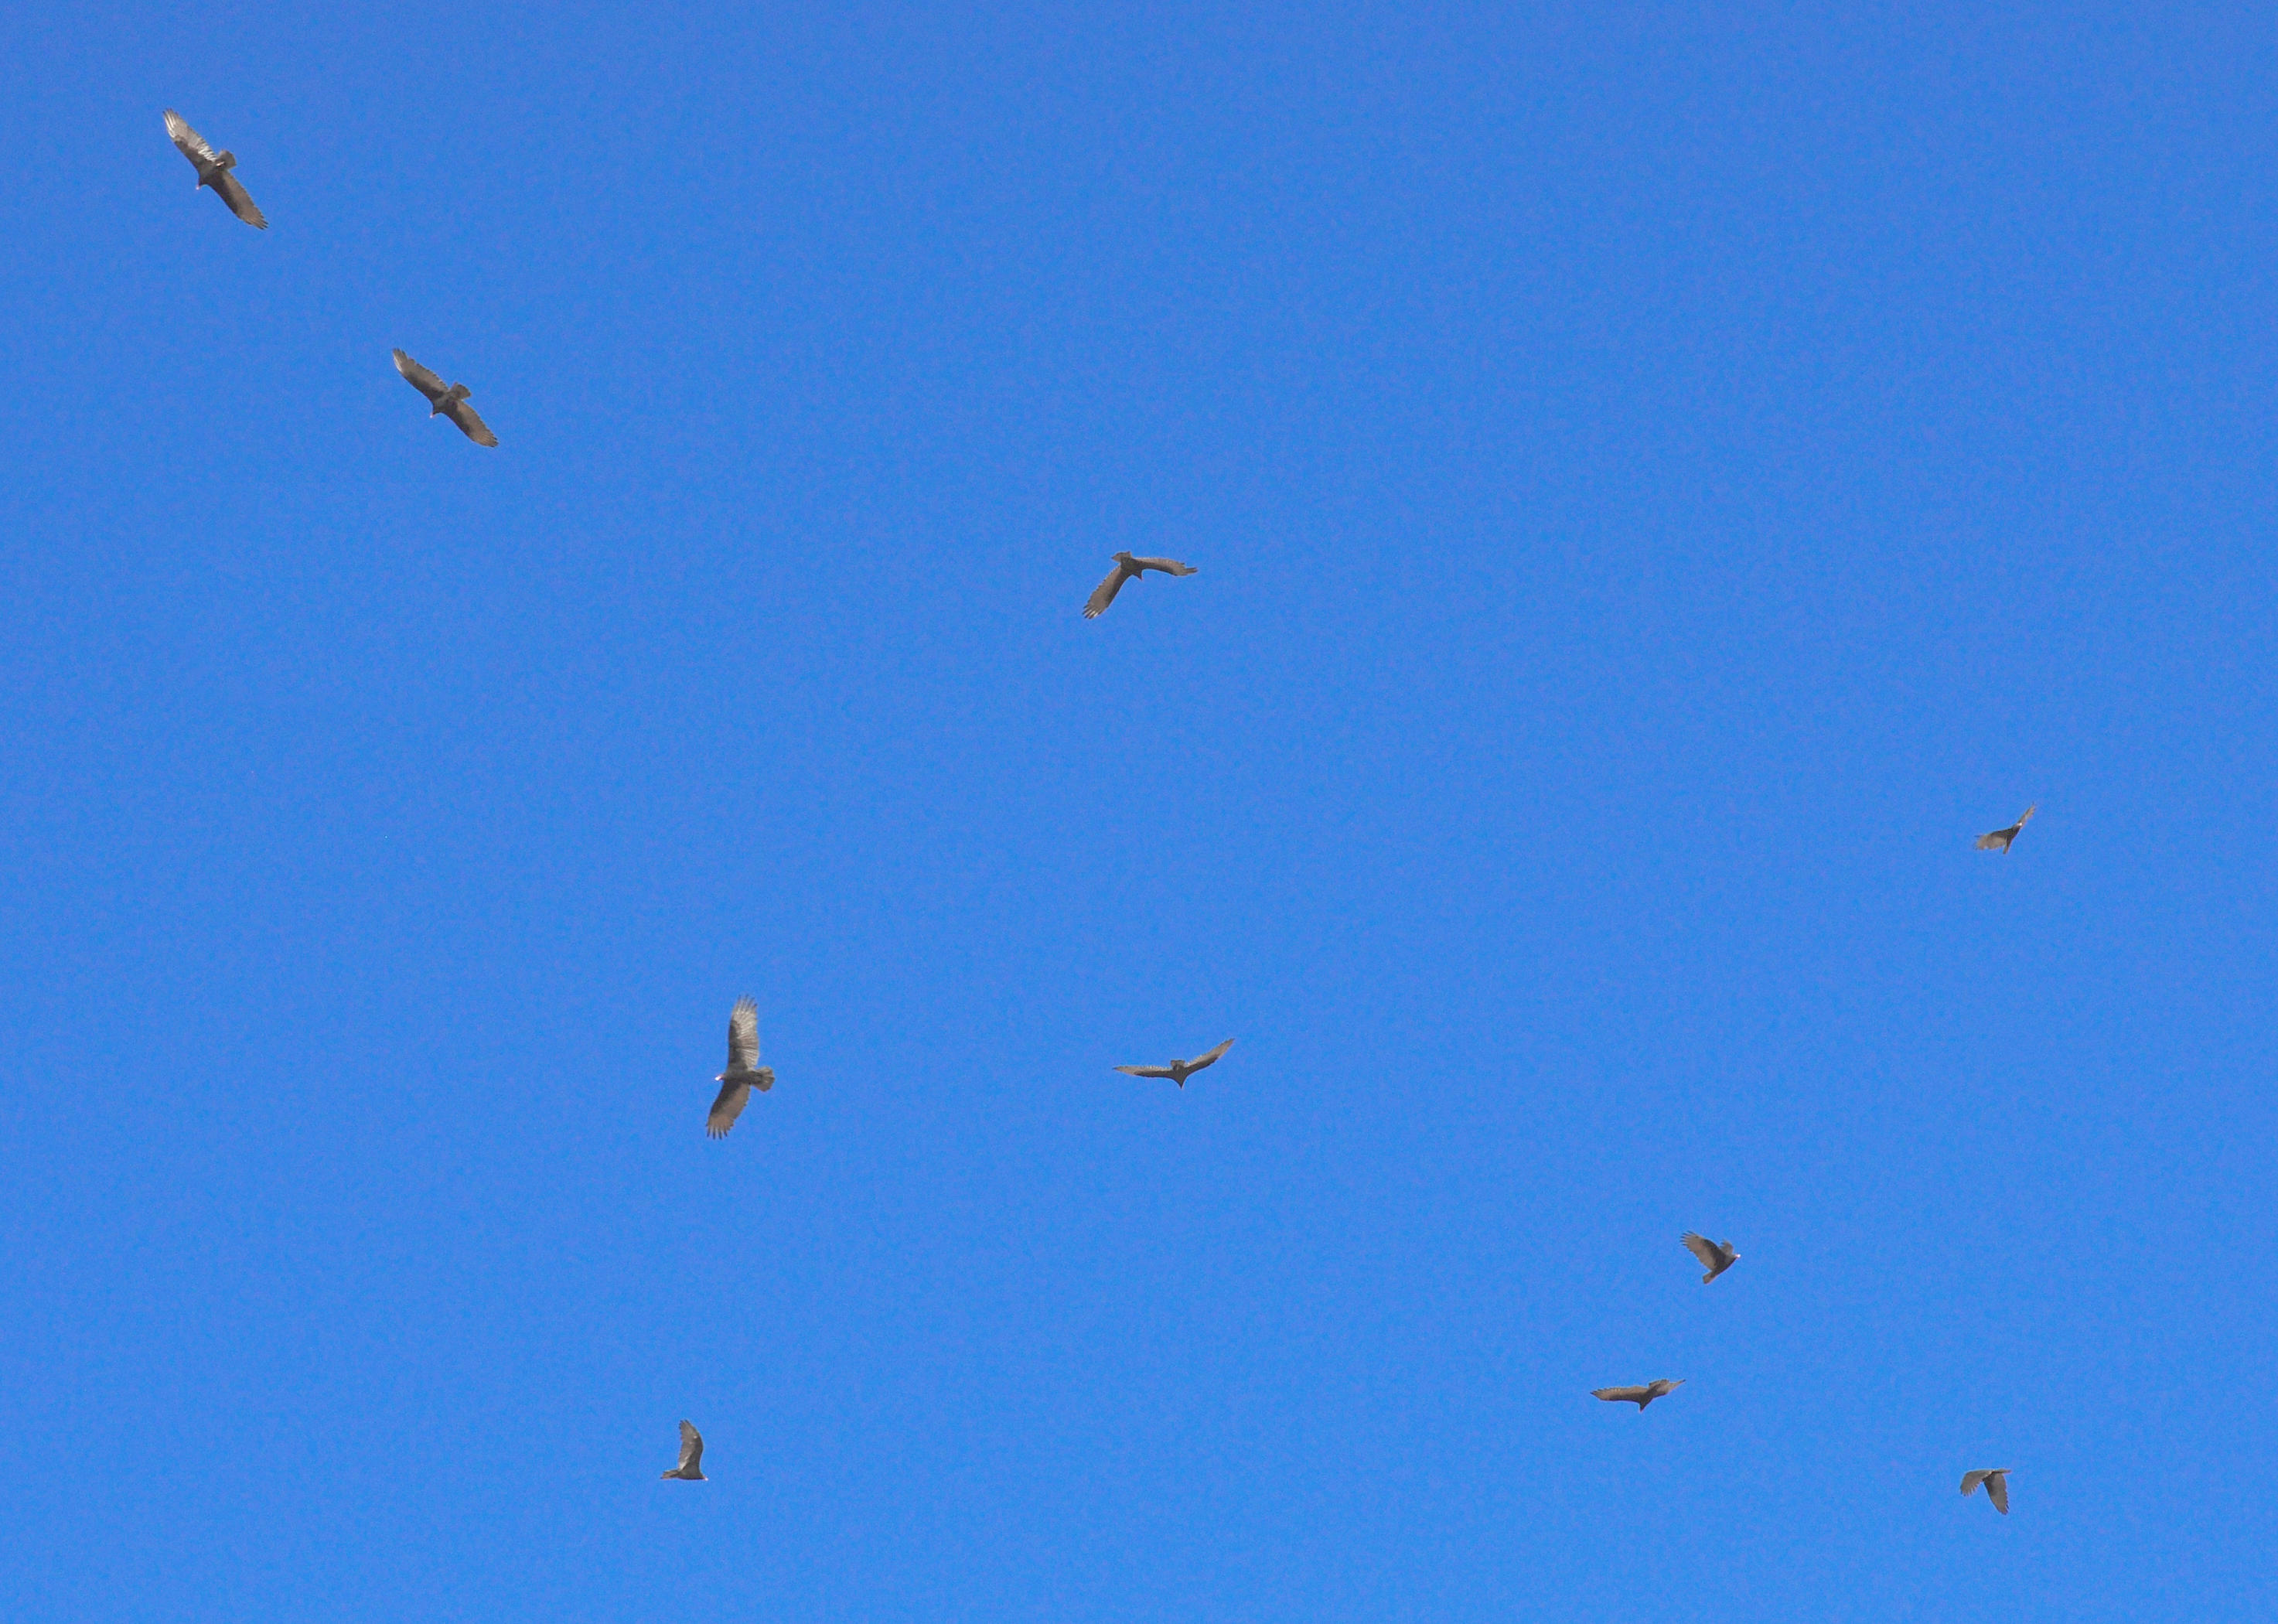 File:Turkey Vultures Hovering.jpg - Wikimedia Commons